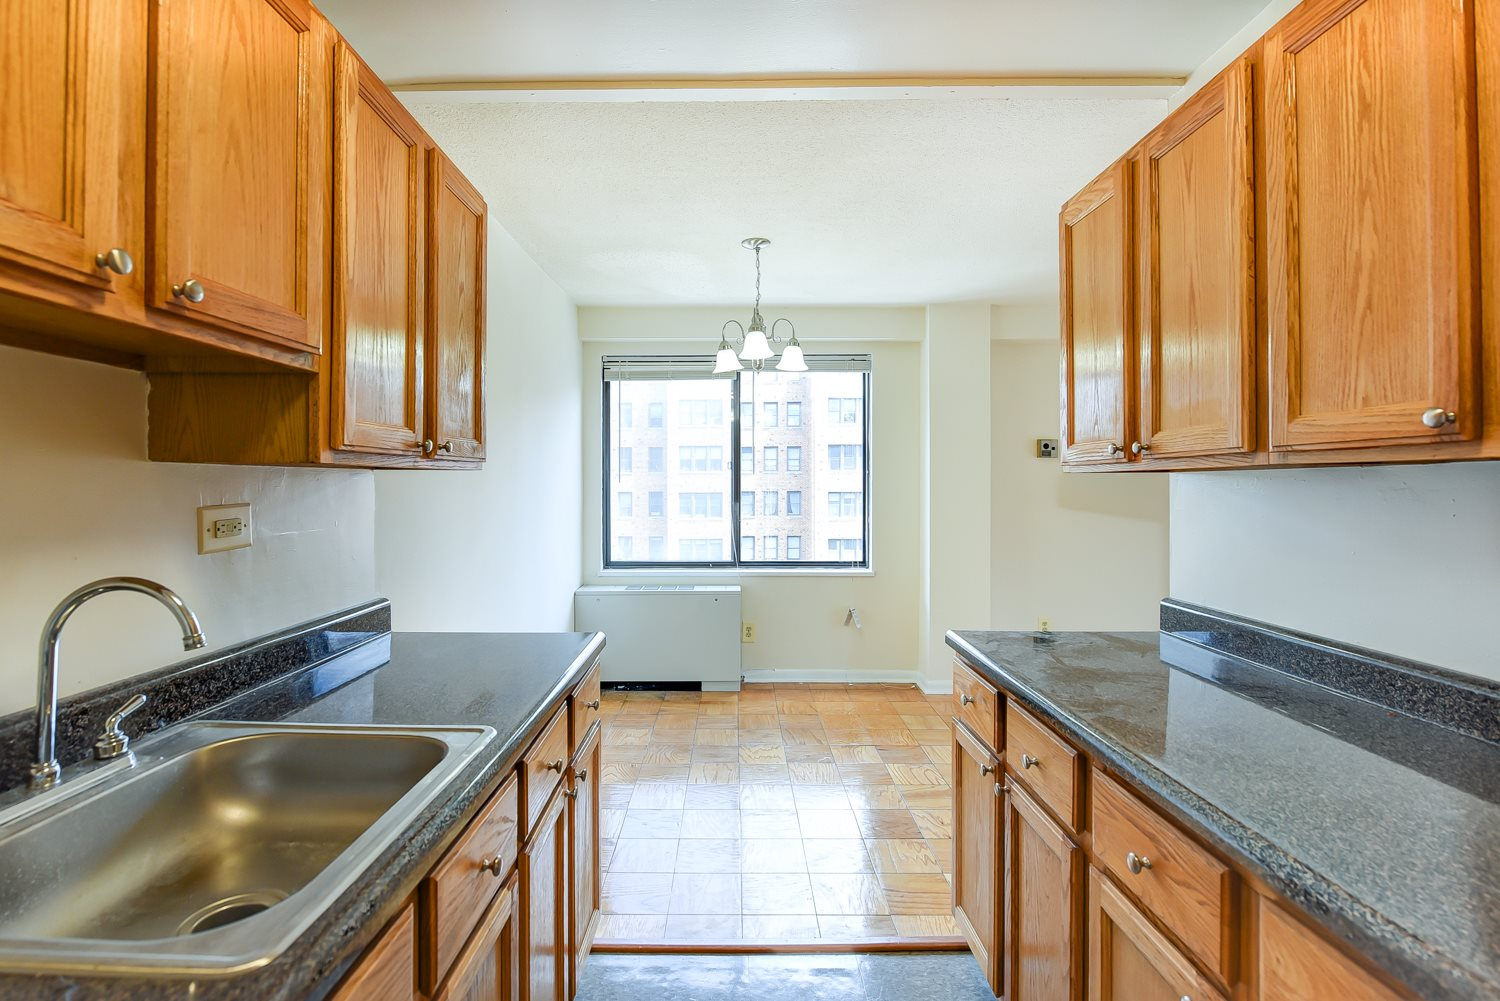 Twin Oaks Kitchen Cabinets And Countertops